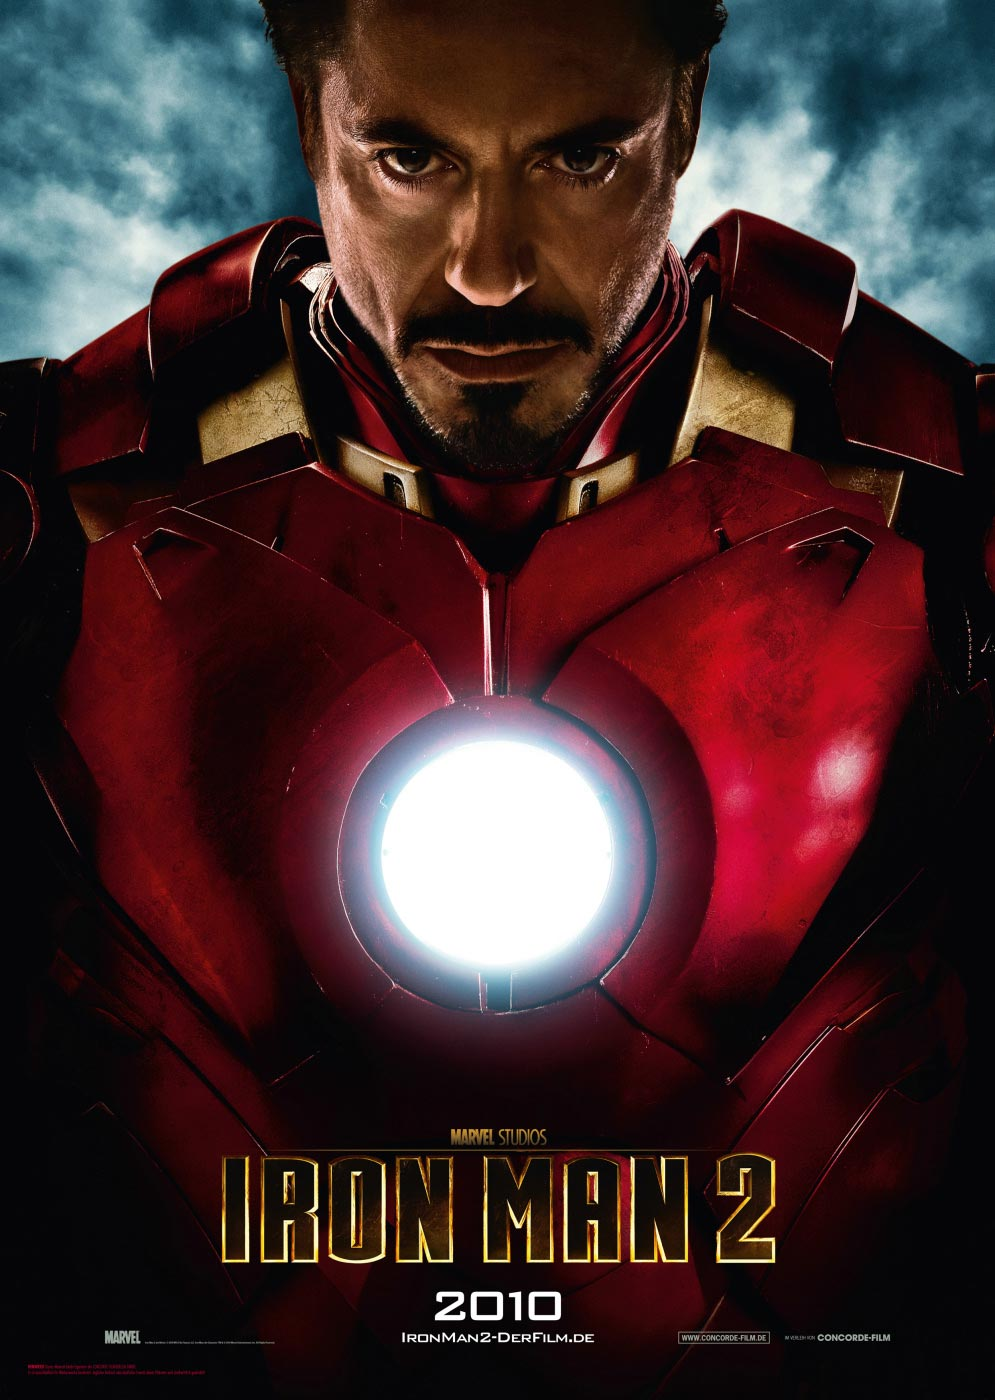 Iron man 2 by ac/dc and soundtrack music charts.